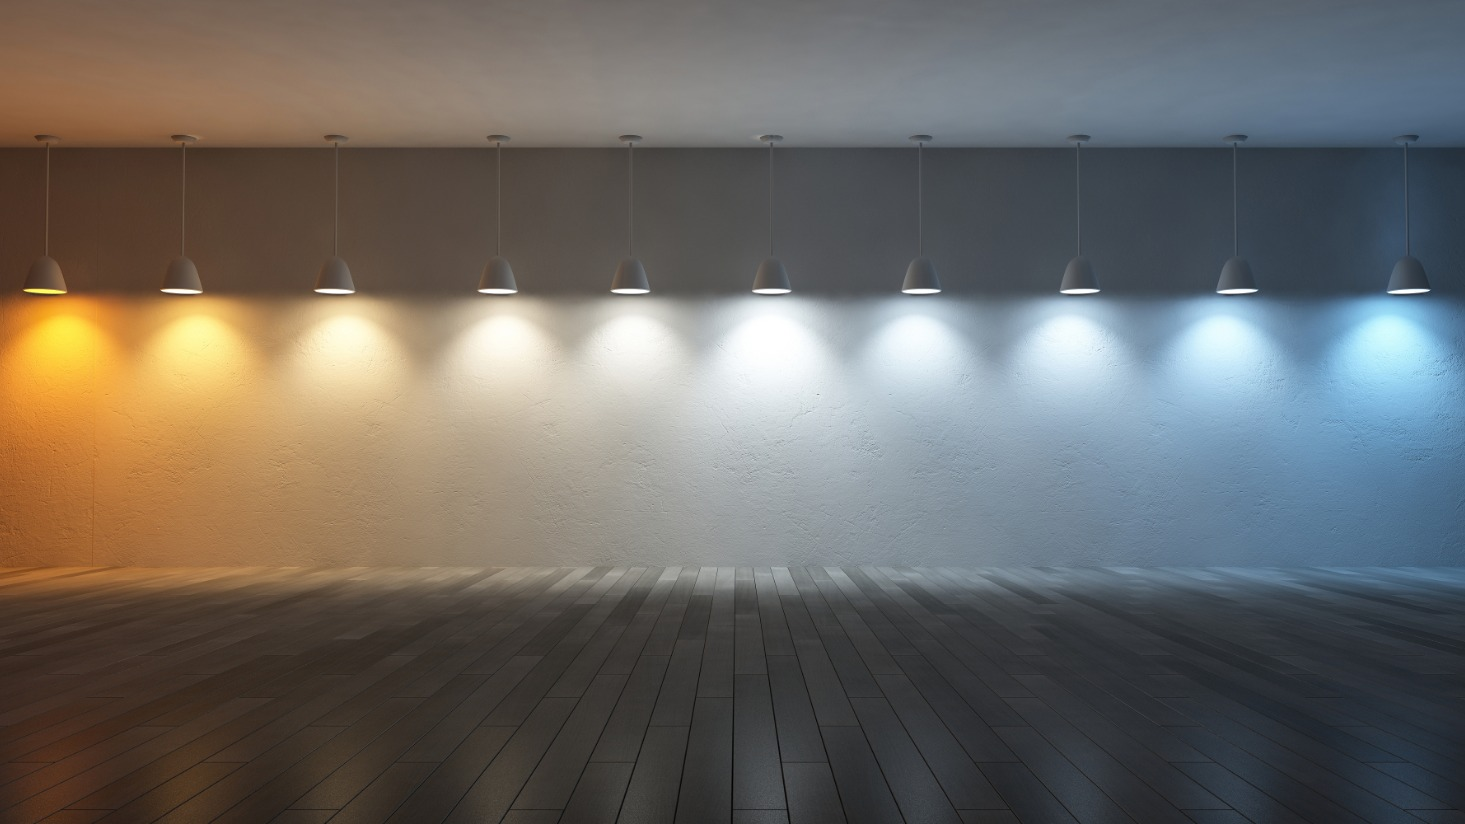 Color temperature and wattage selectable LEDs [Pros and cons]